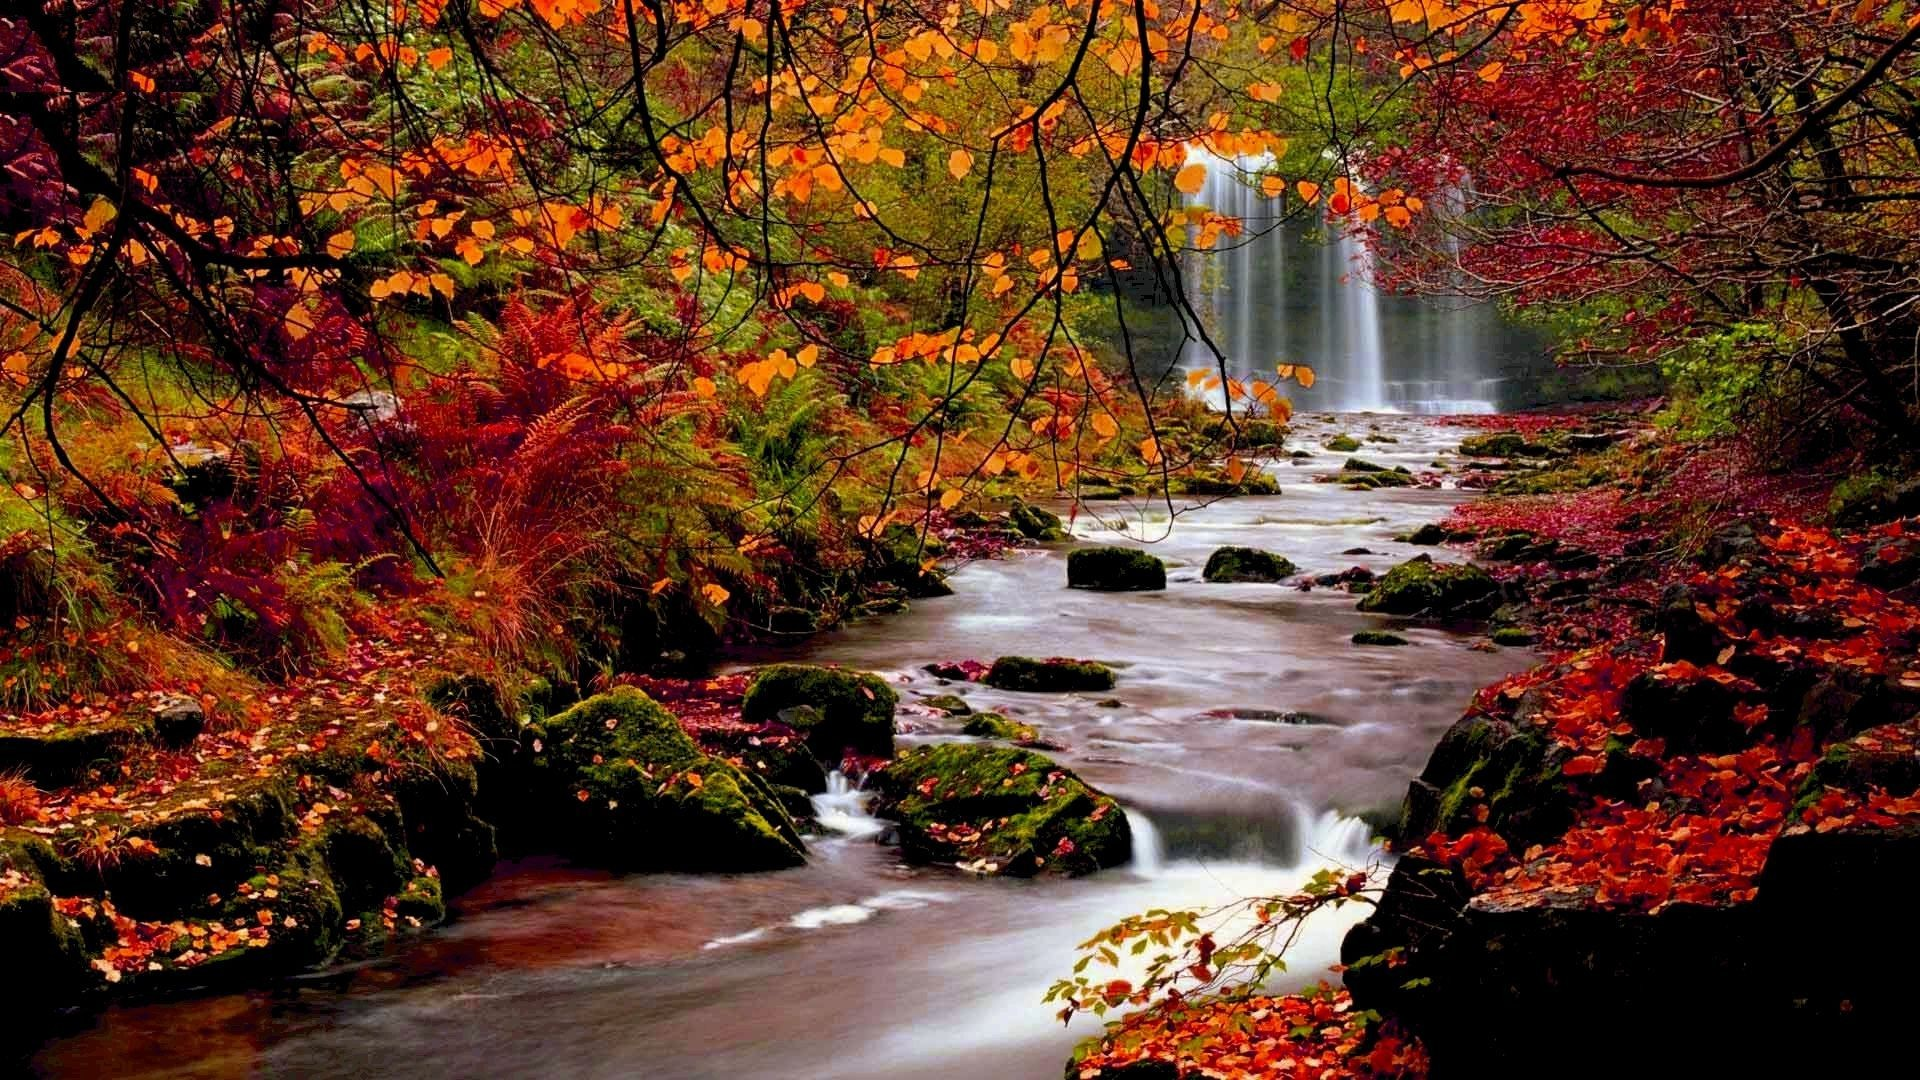 Iphone 6 Wallpaper Fall Leaves Christian Autumn Wallpaper 36 Images